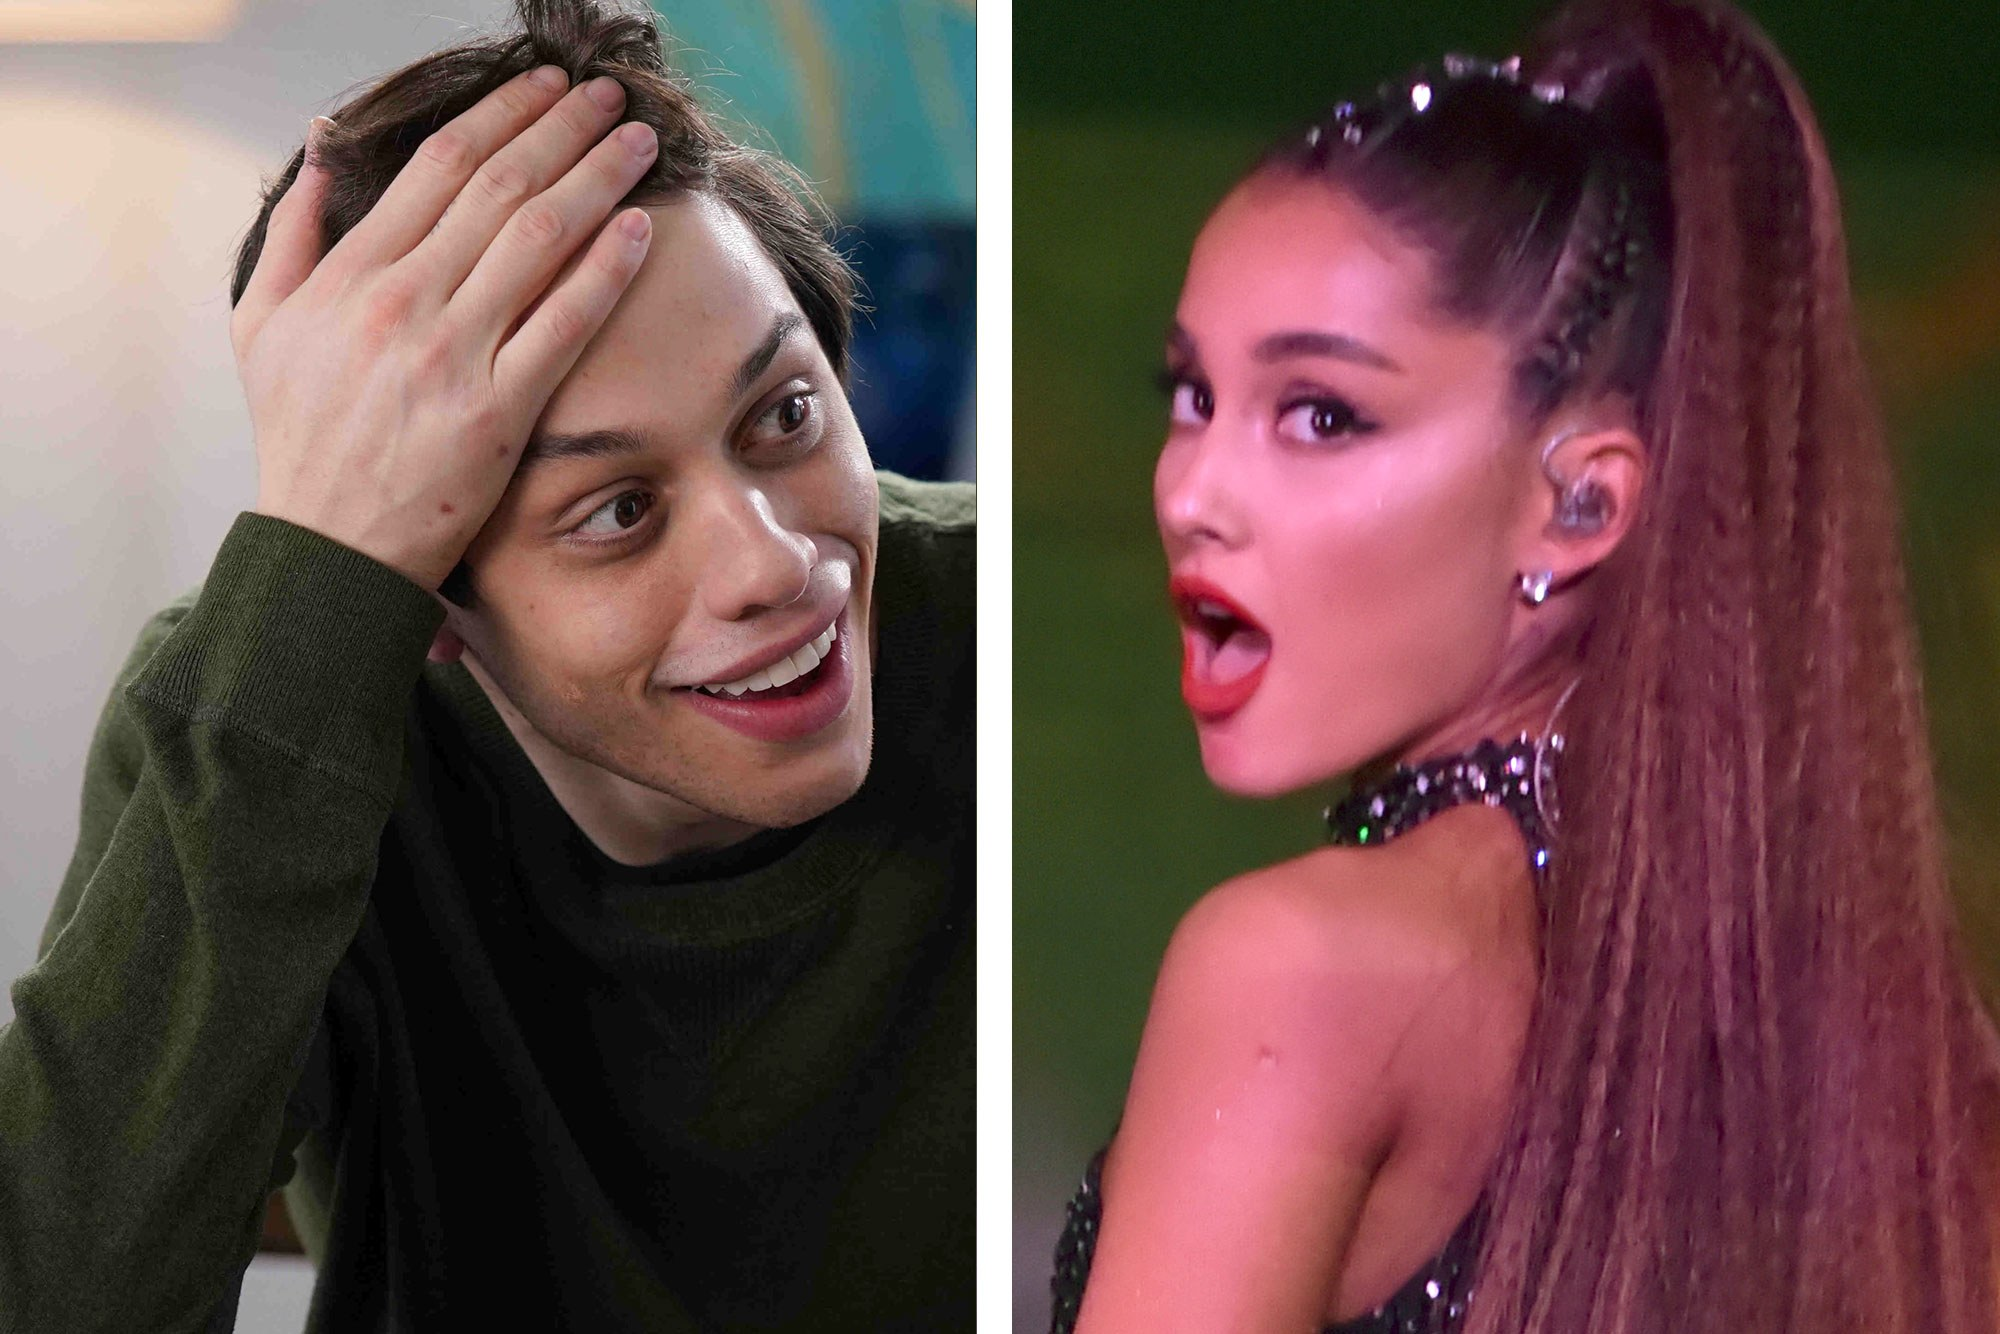 LOVE IS IN THE AIR: Ariana Grande and Pete Davidson are Engaged